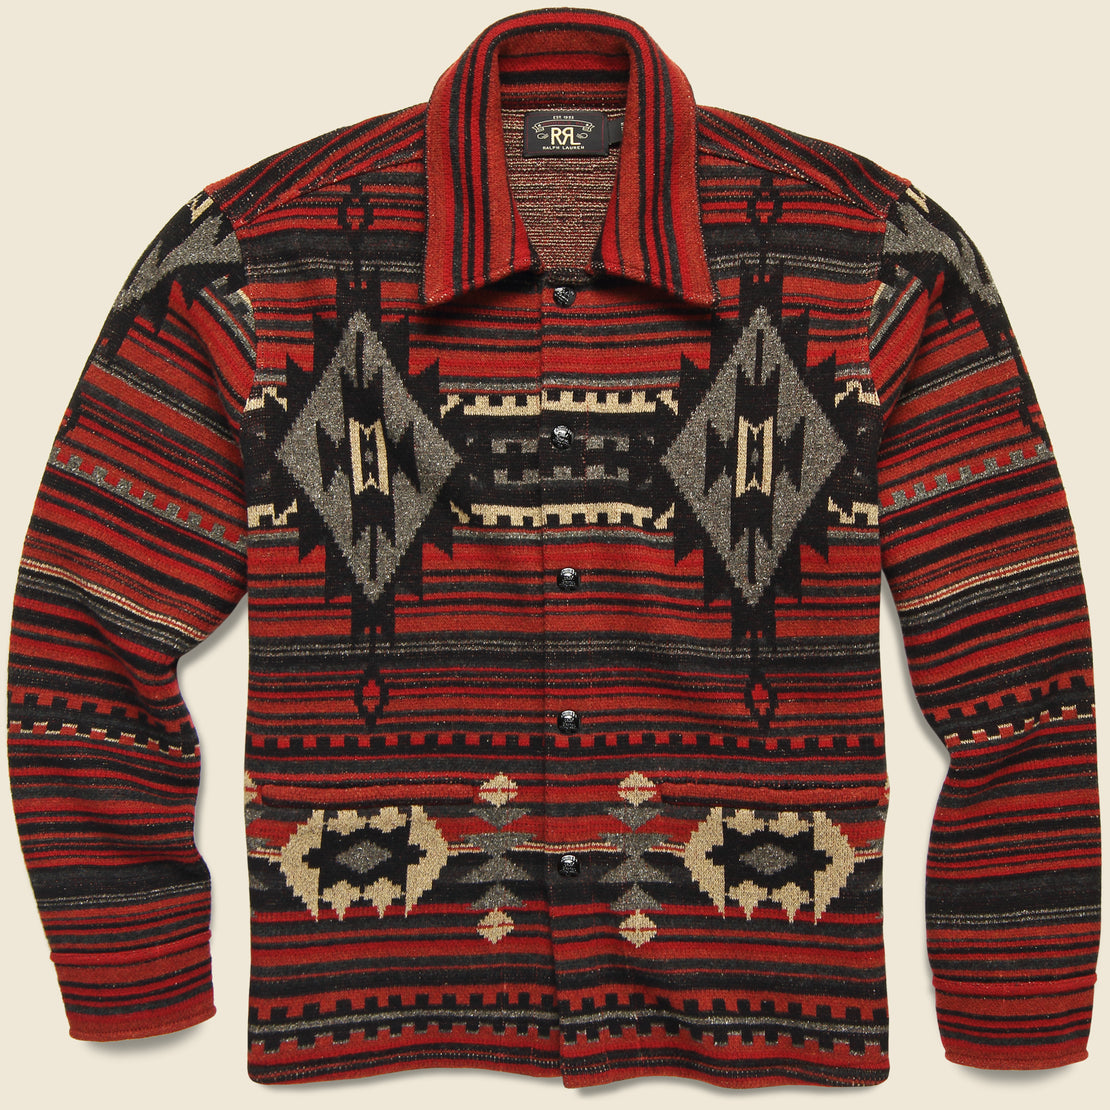 RRL Wool-Blend Jacquard Workshirt Sweater - Red/Black